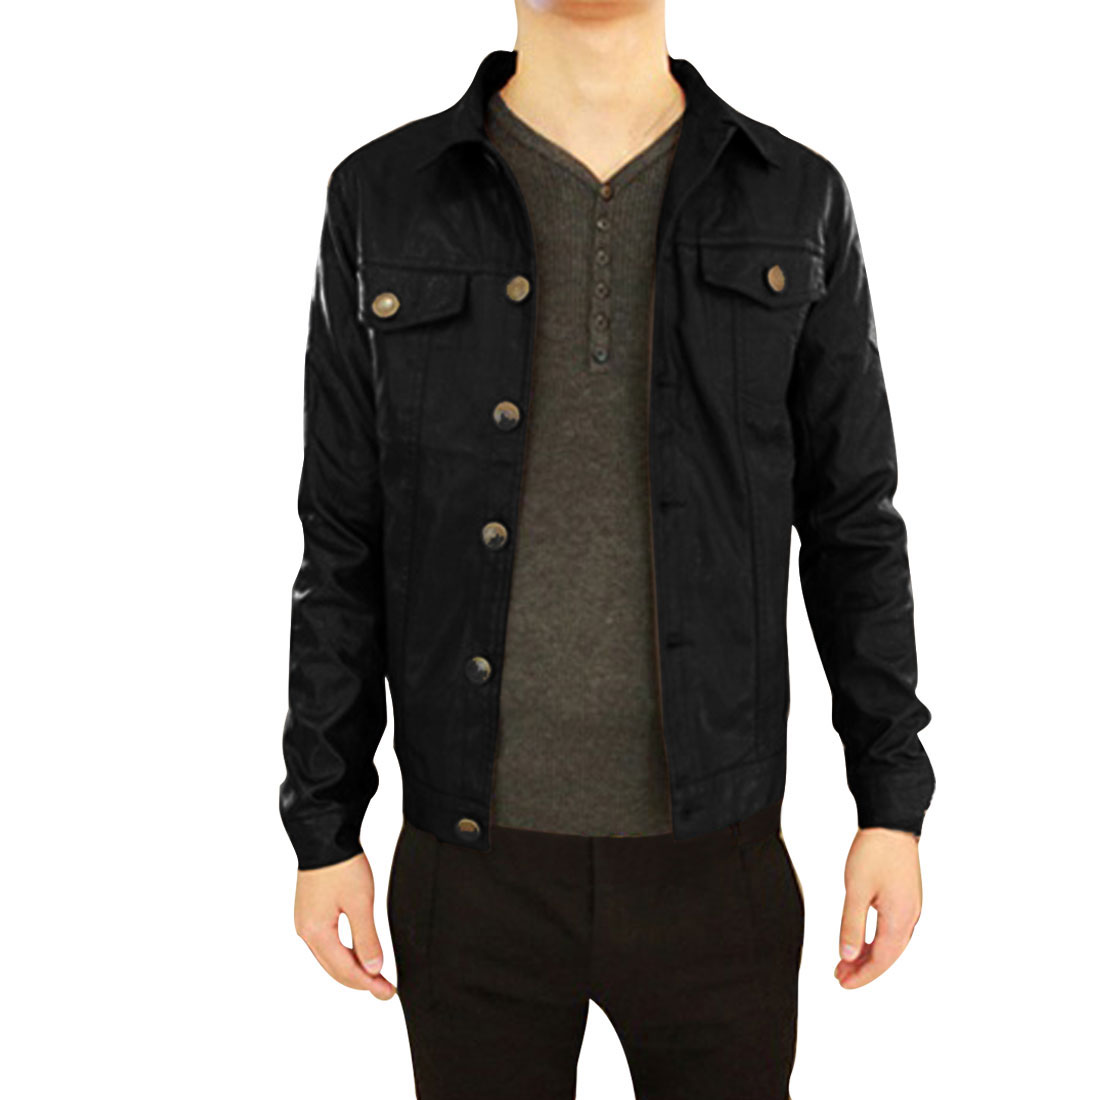 Black Front Pockets Turn Down Collar Man Imitation Leather Jacket S